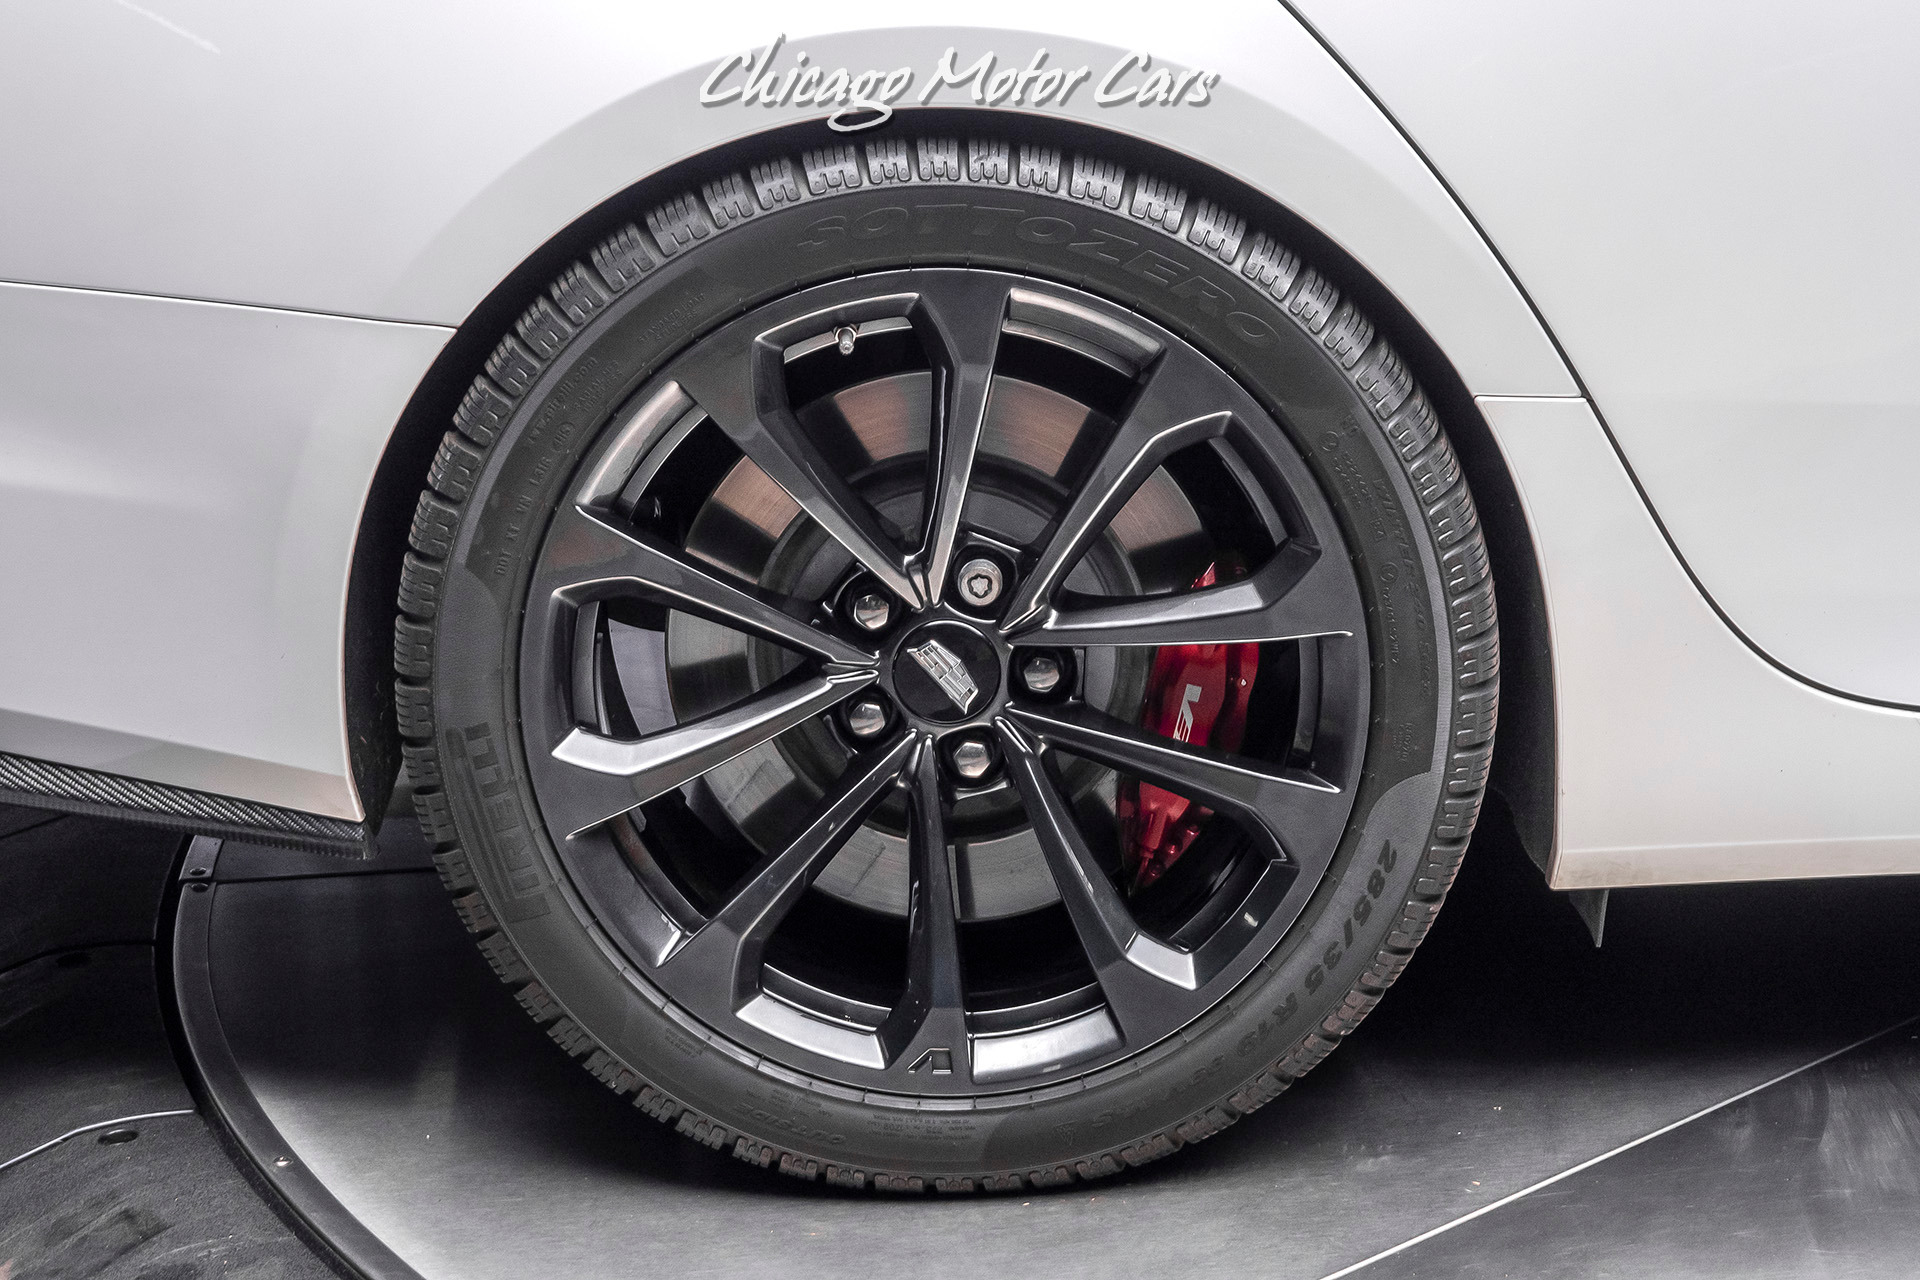 Used-2018-Cadillac-CTS-V-LOADED-Only-7K-Miles-Carbon-Fiber-Package